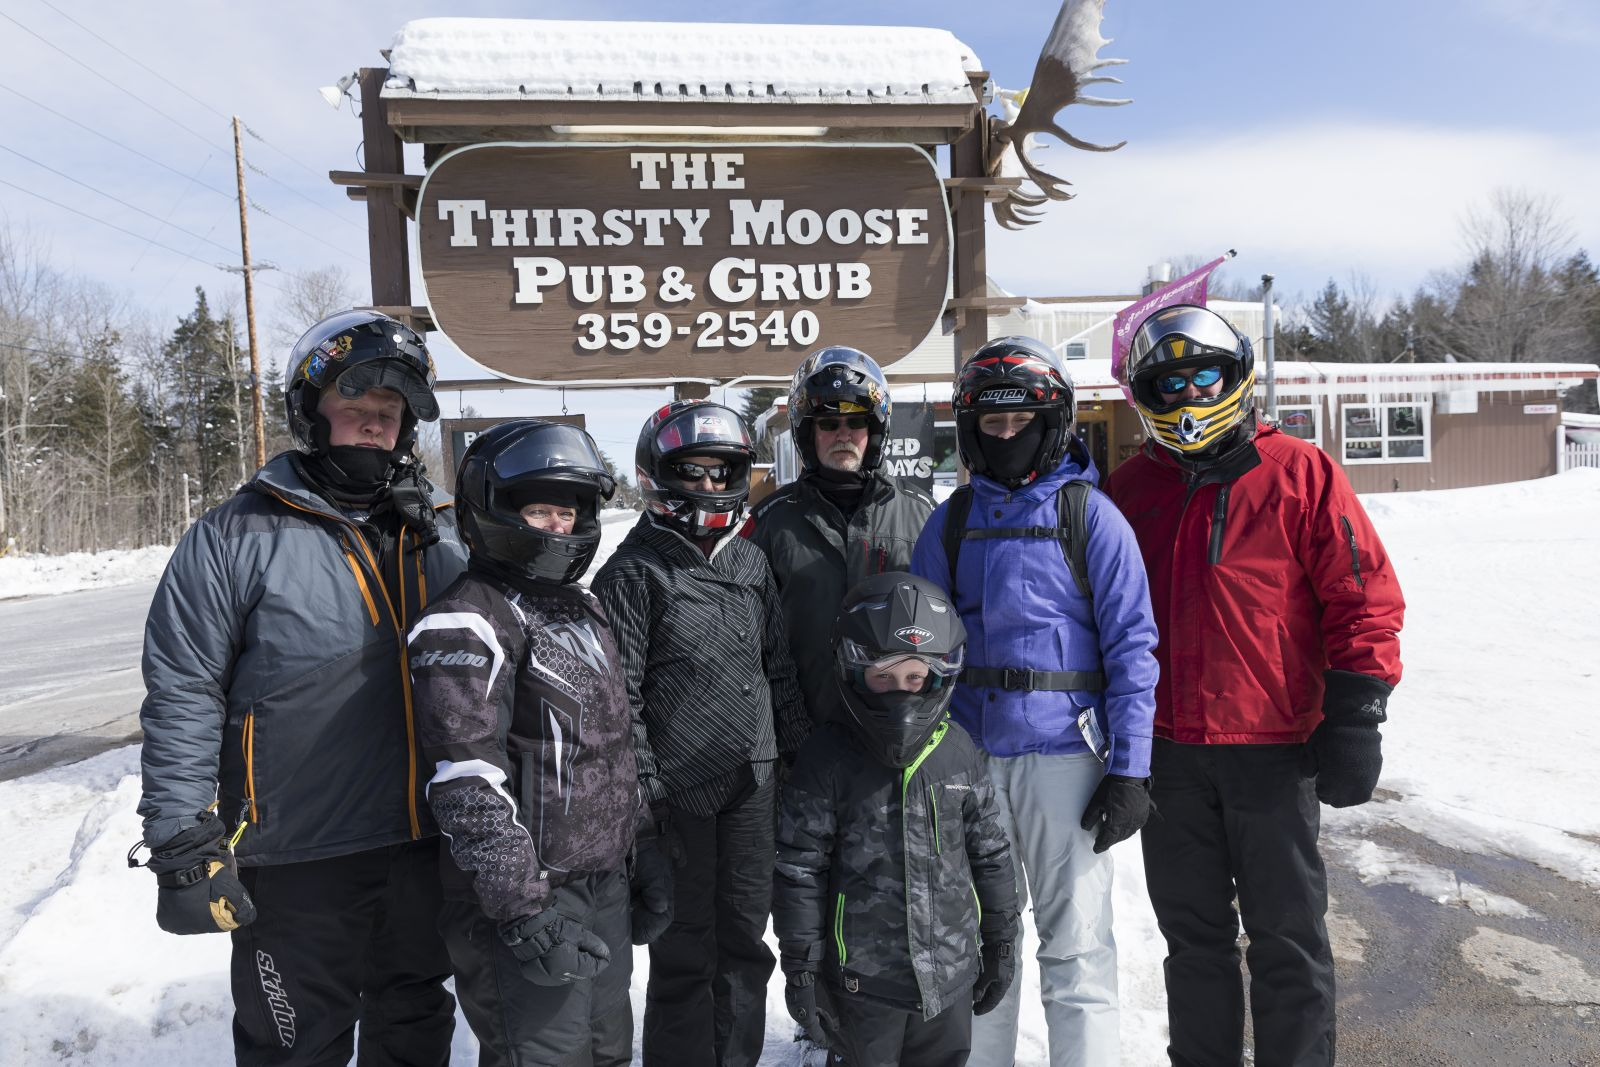 Try out The Thirsty Moose in Childwold for delicious food!